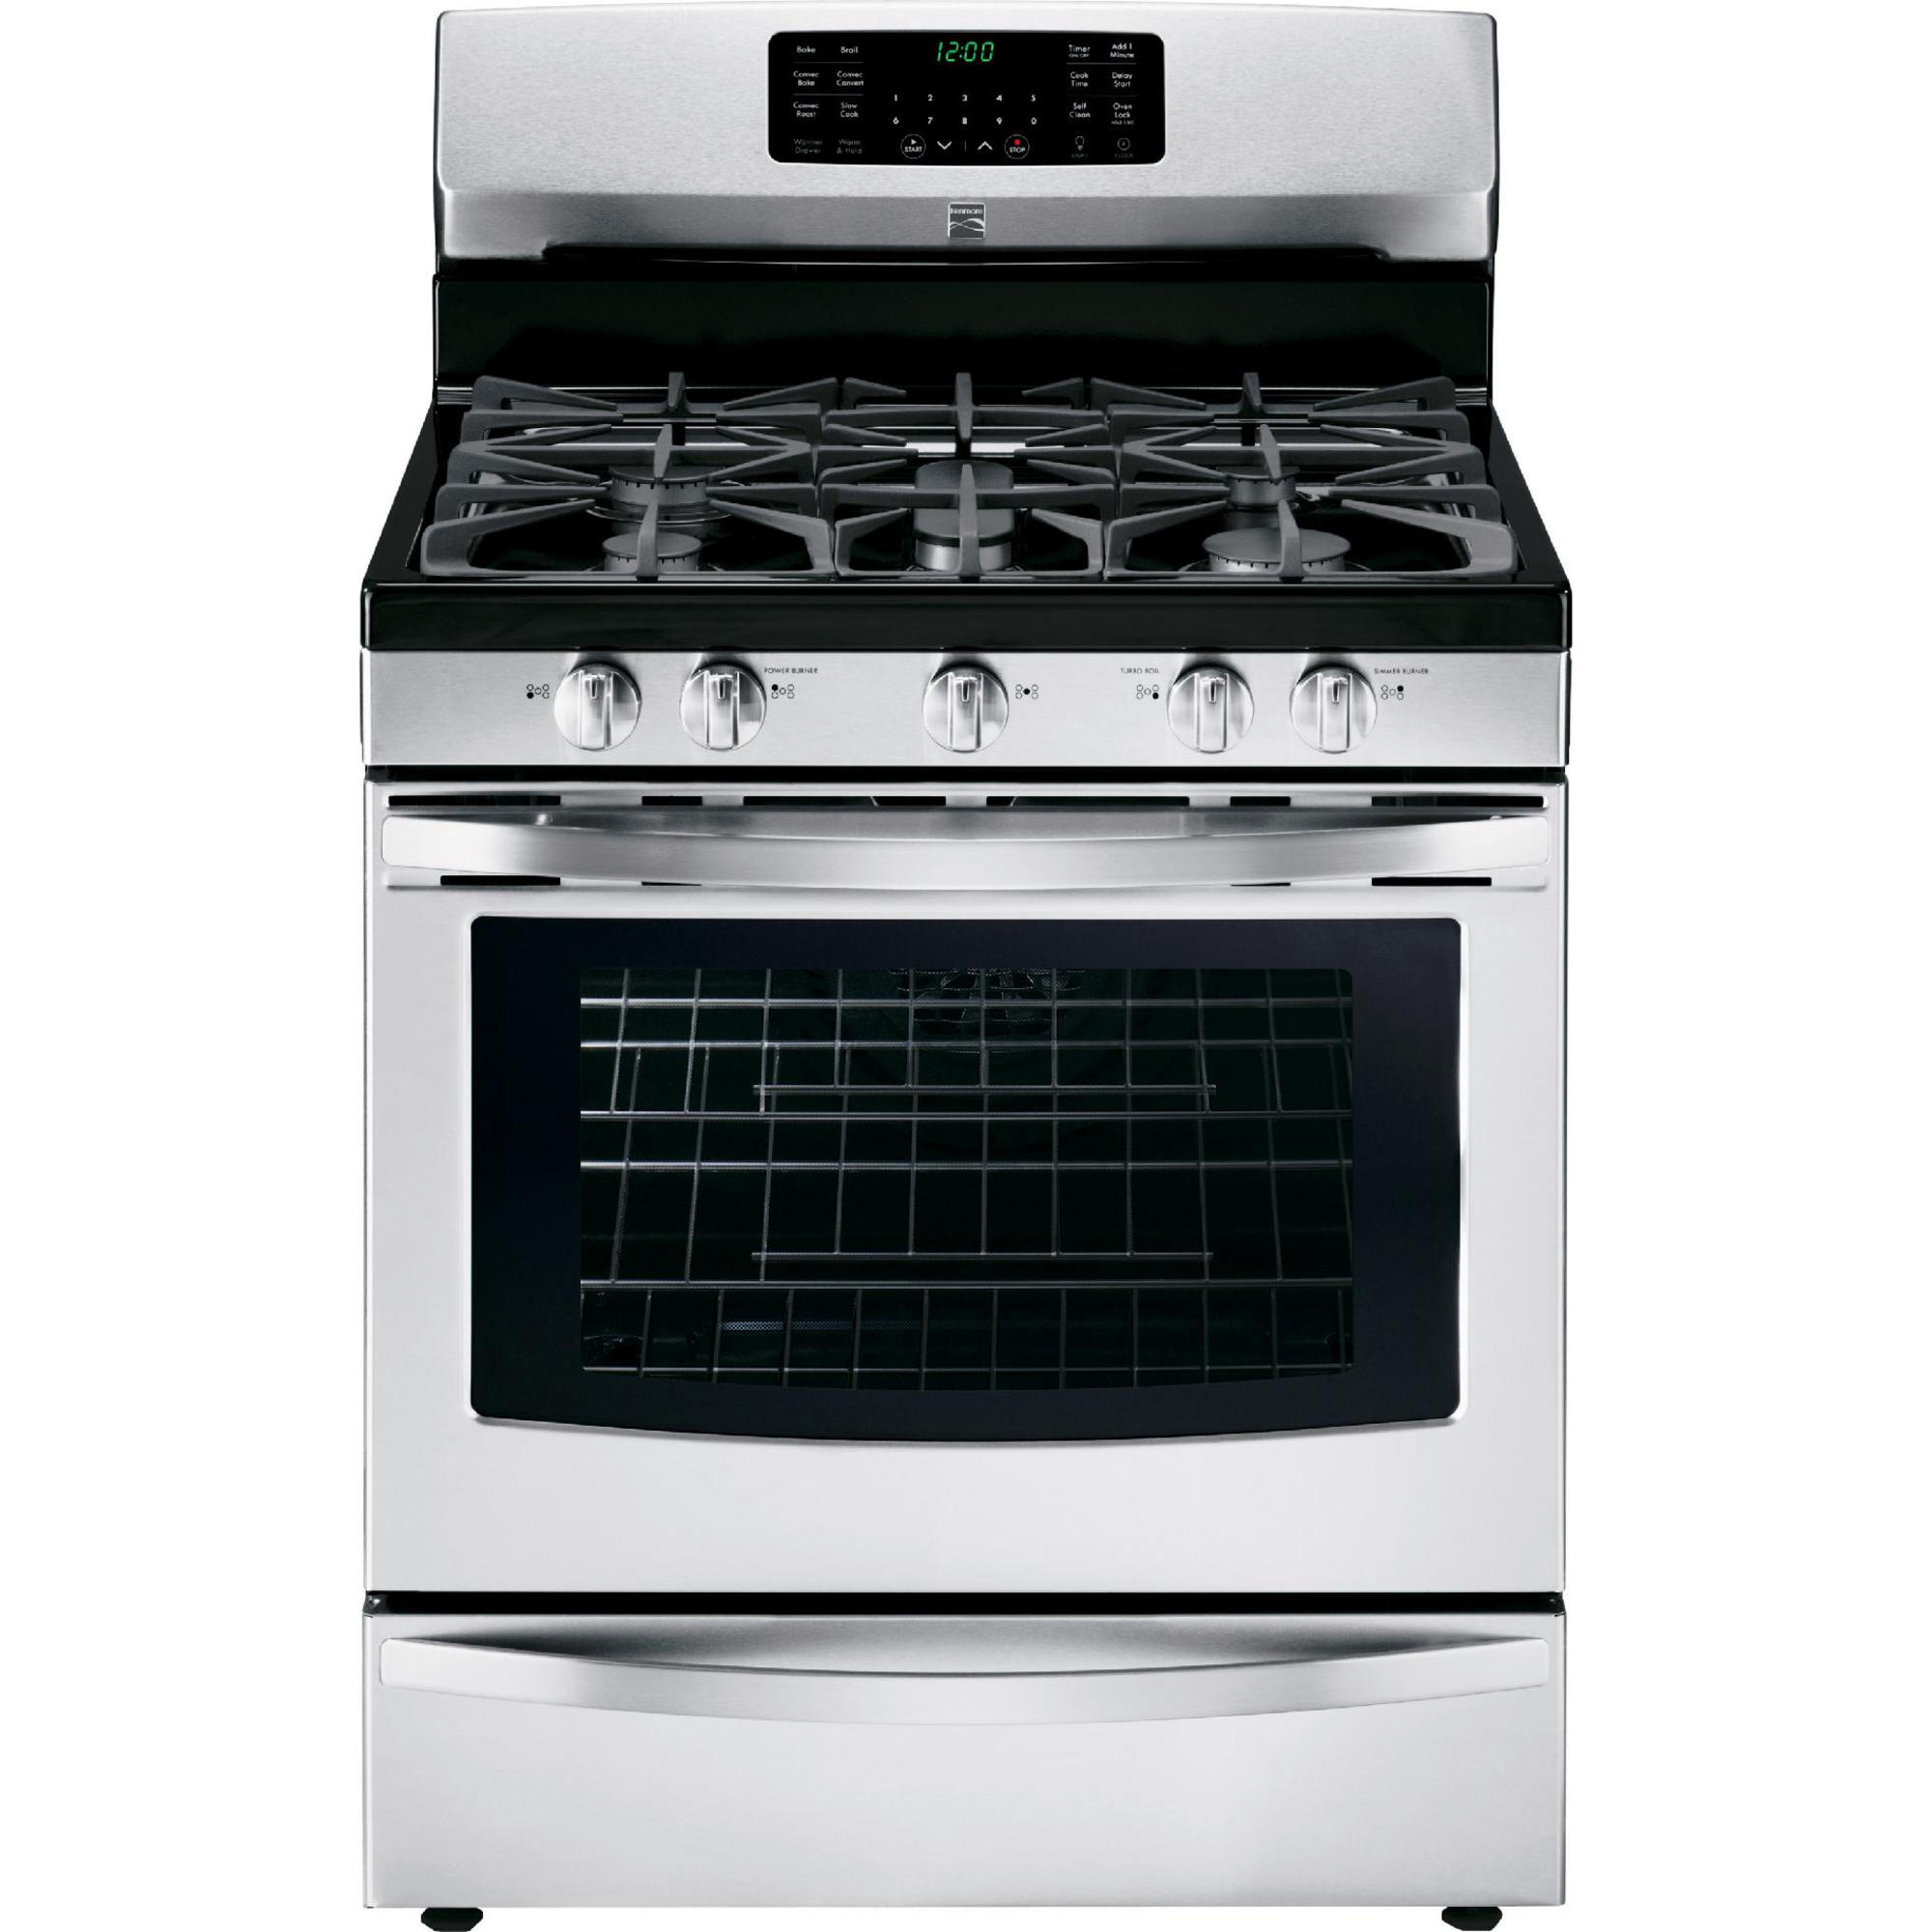 74333-5-6-cu-ft-Gas-Range-w-True-Convection-Stainless-Steel